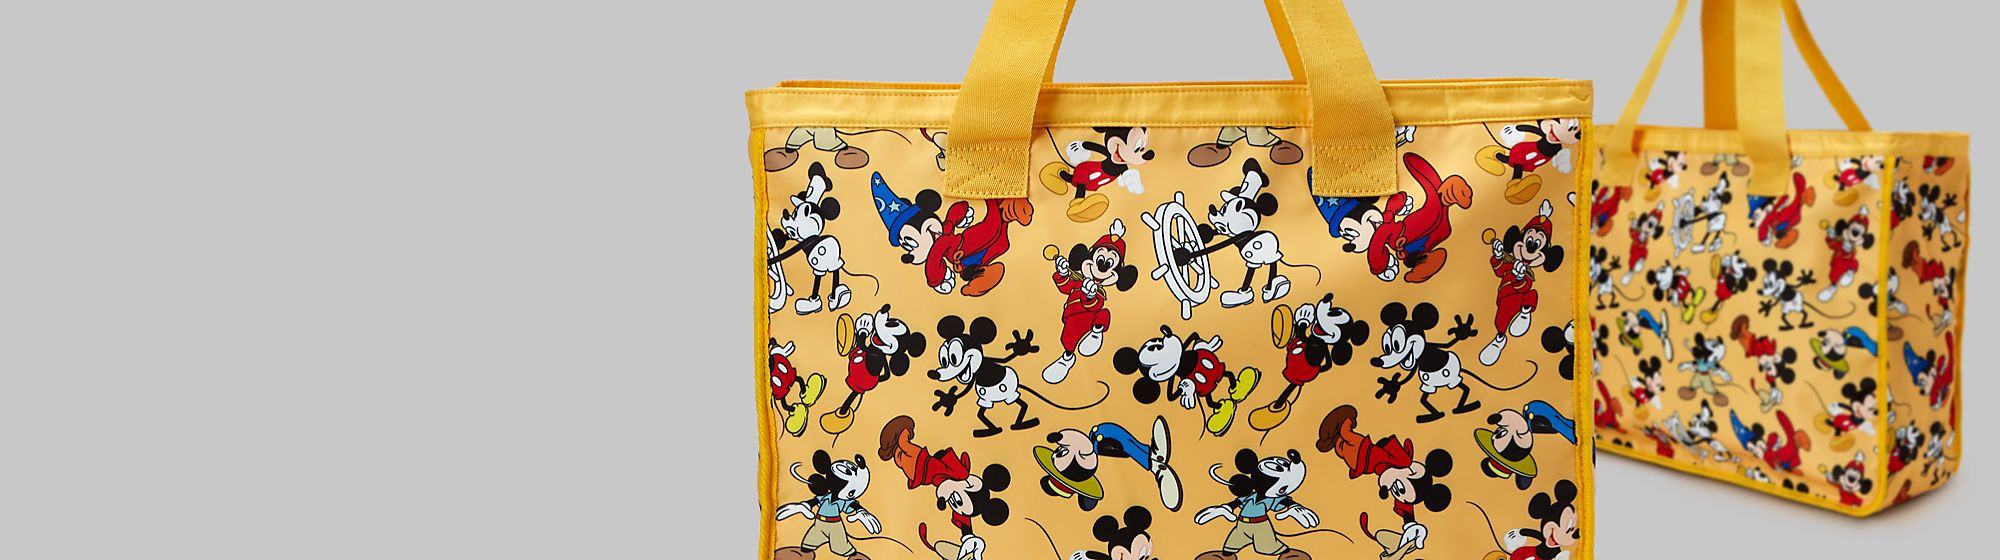 Mickey Mouse Through the Ages Tote Bag Only £9.99